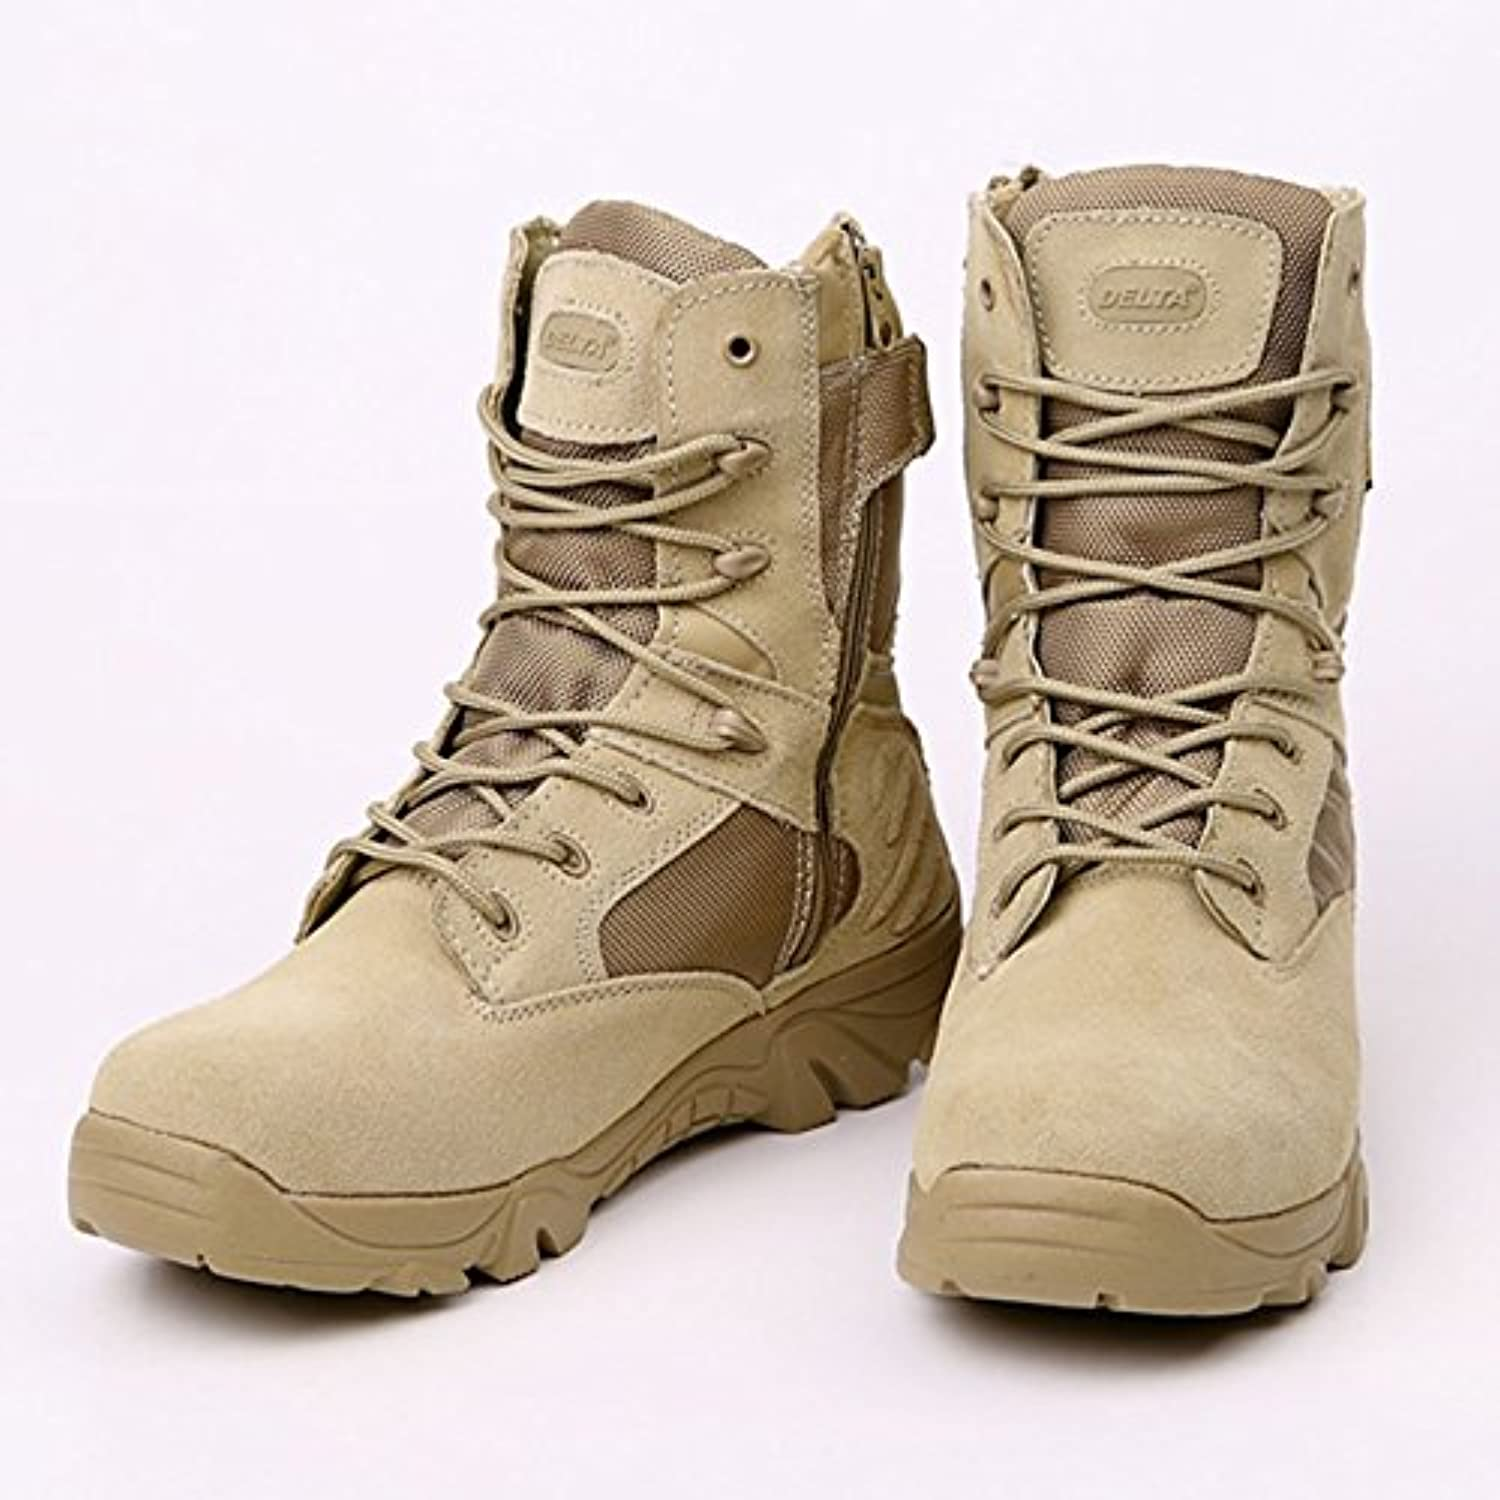 Travel Supplies - Army Men Commando Combat Desert Outdoor Hiking Boots Landing Tactical Military shoes - (Size(US)  8, color  Khaki)